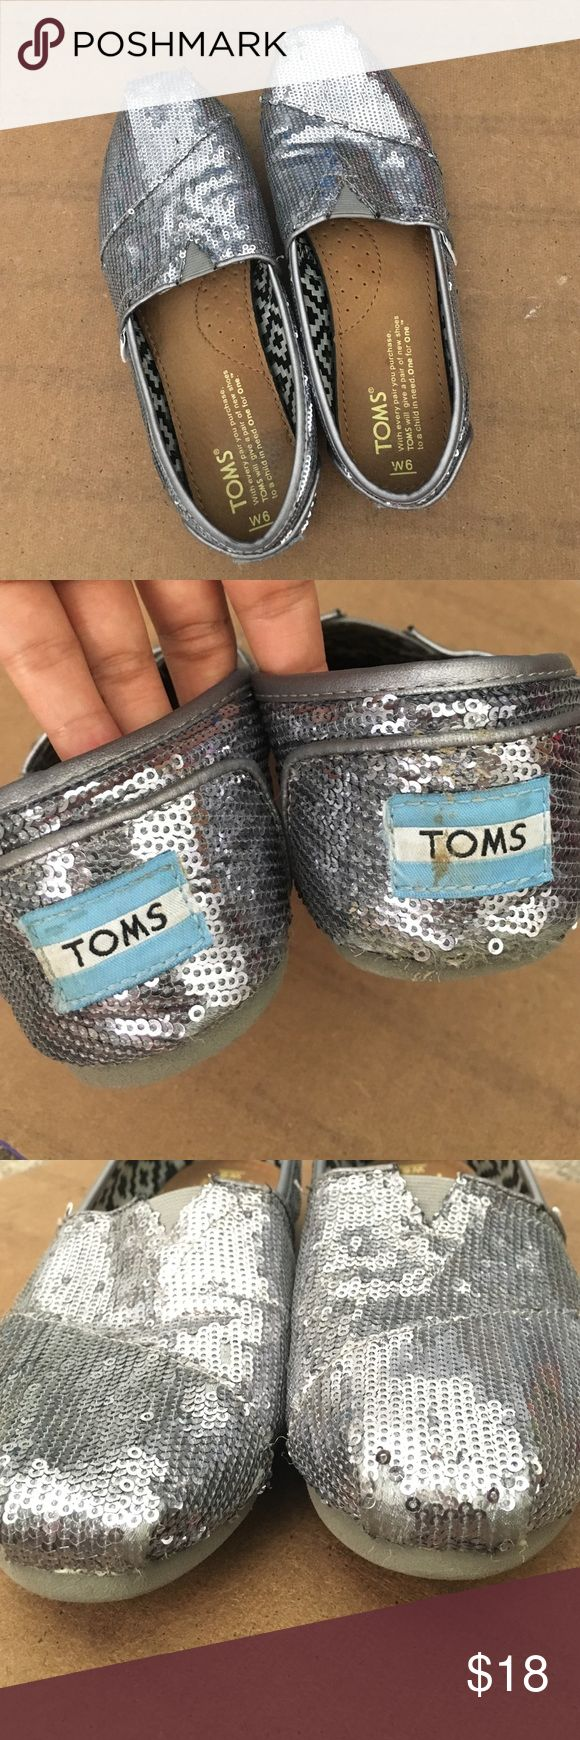 ‼️50%OFF‼️ TOMS pewter sequin shoes Pewter sequin shoes [very metallic/glittery] Size 6 by TOMS. Pic #2-4 shows wear on the back, toes, bottom / sequins missing - these have been worn - good condition TOMS Shoes Espadrilles